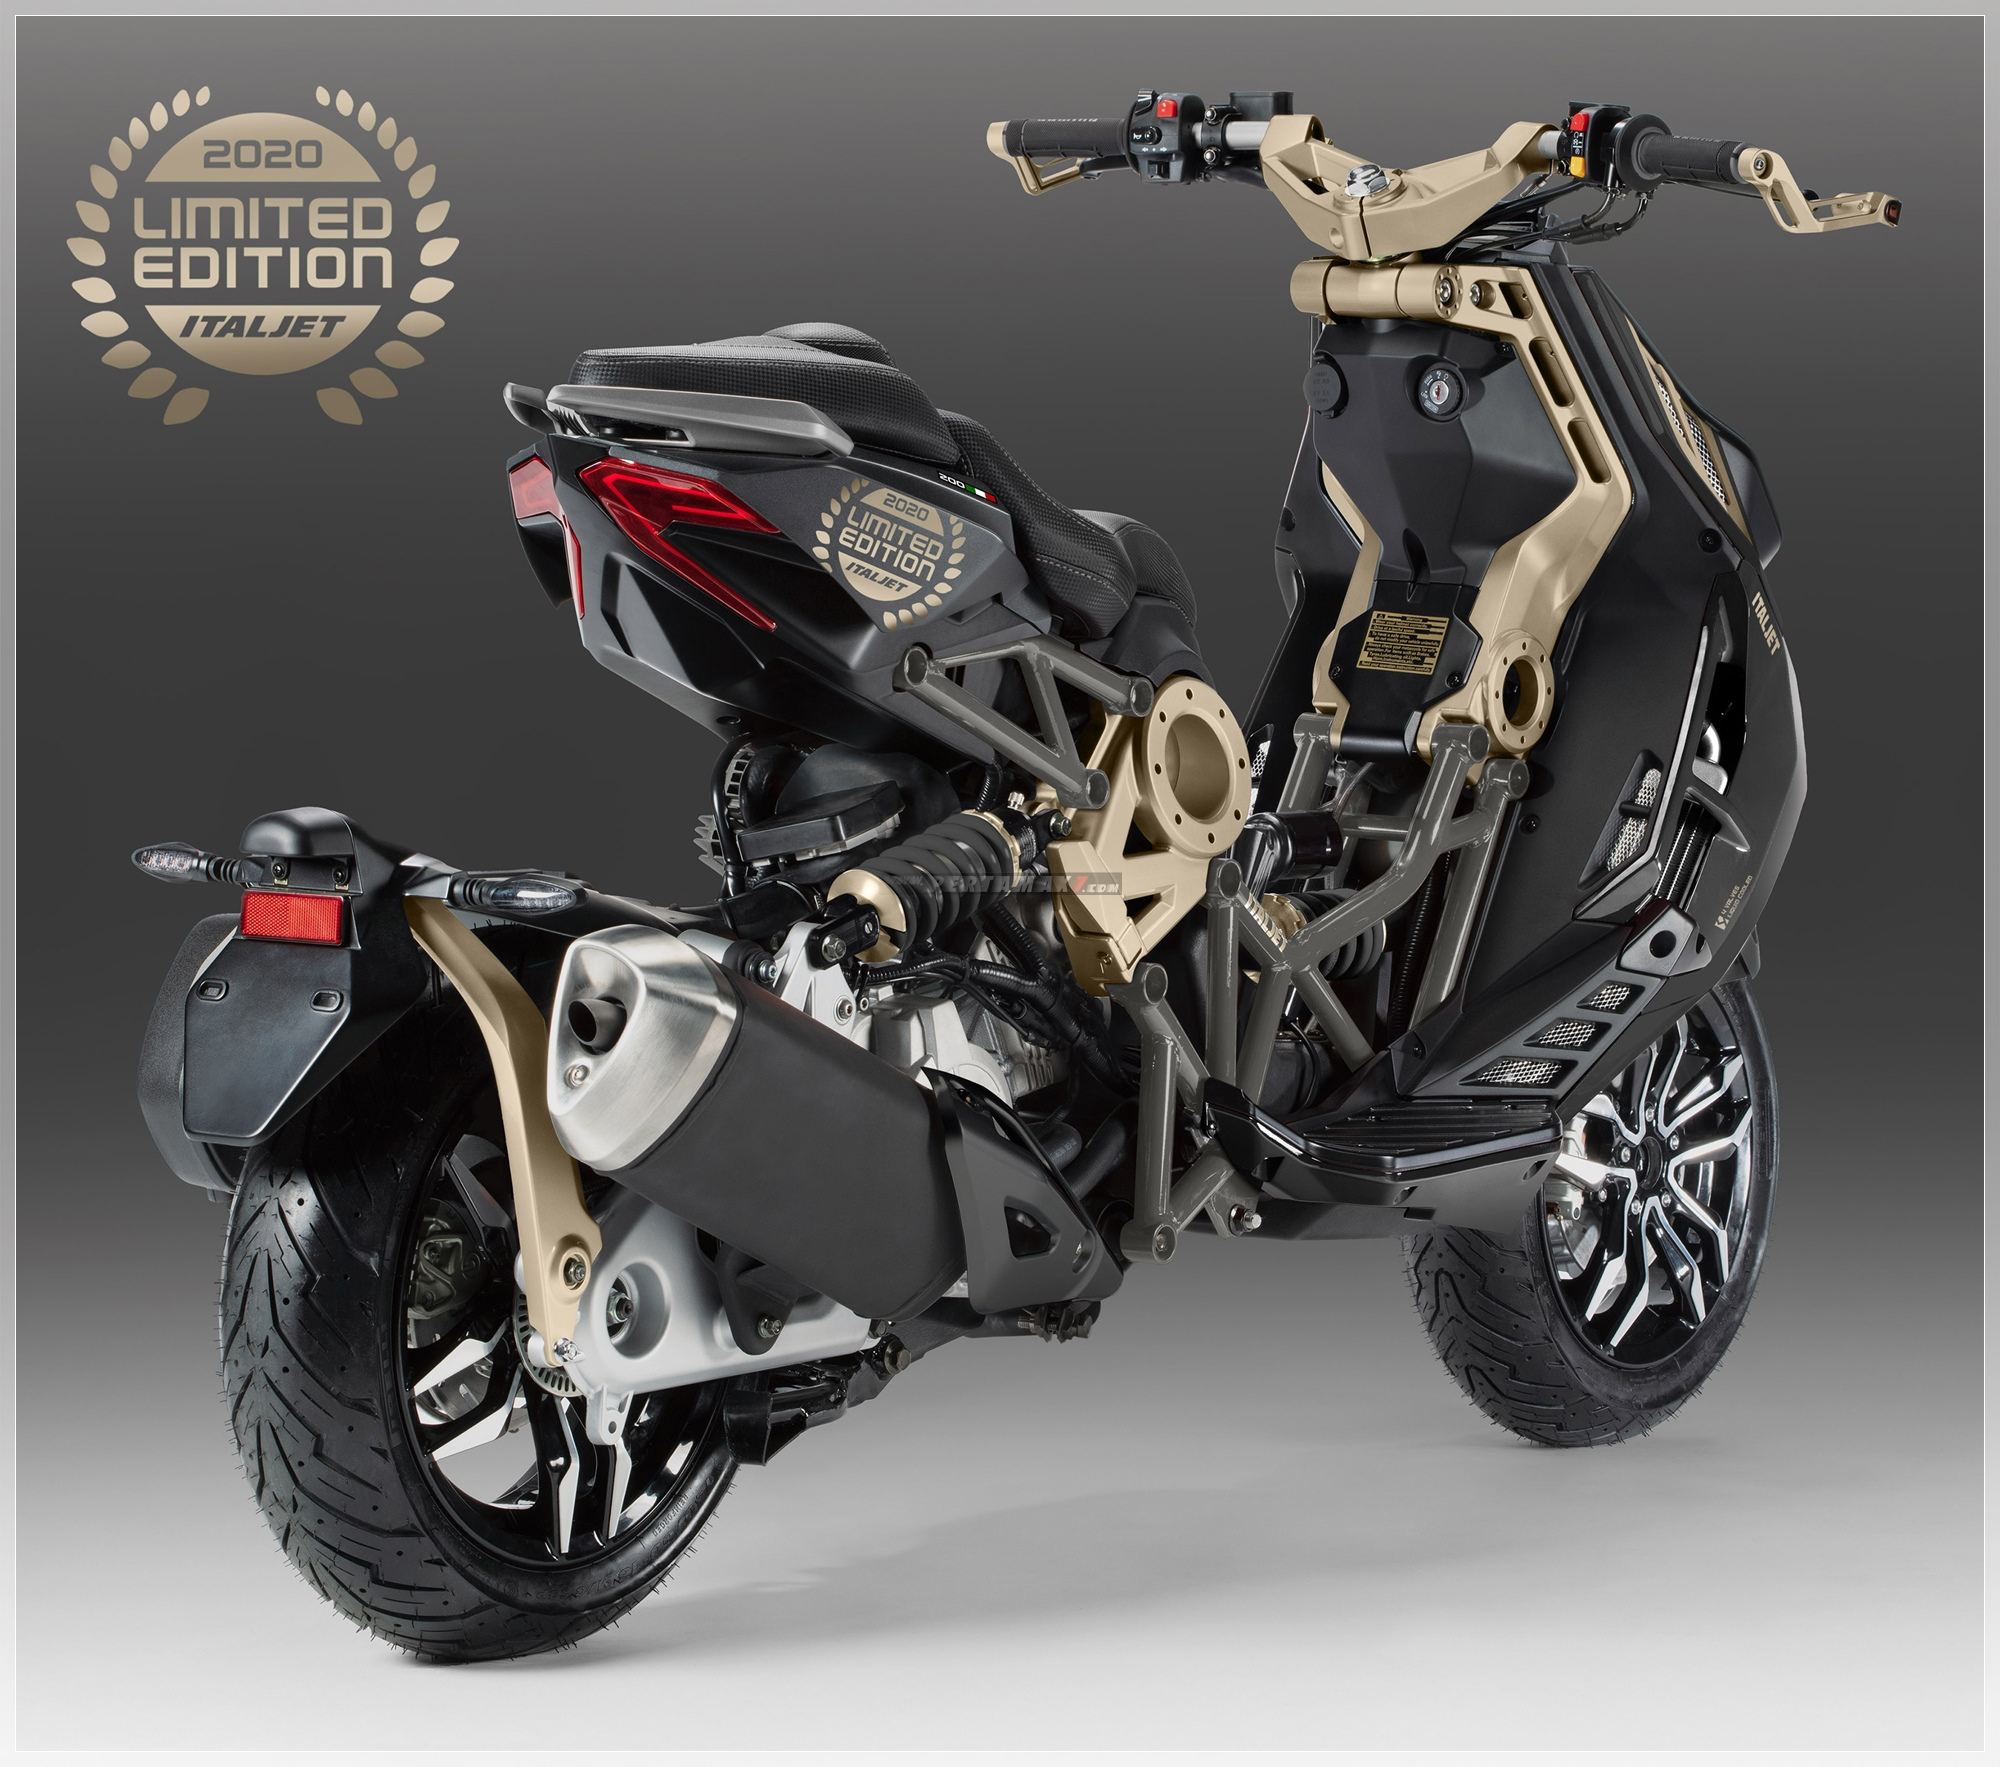 Harga Italjet Dragster Limited Edition Indonesia